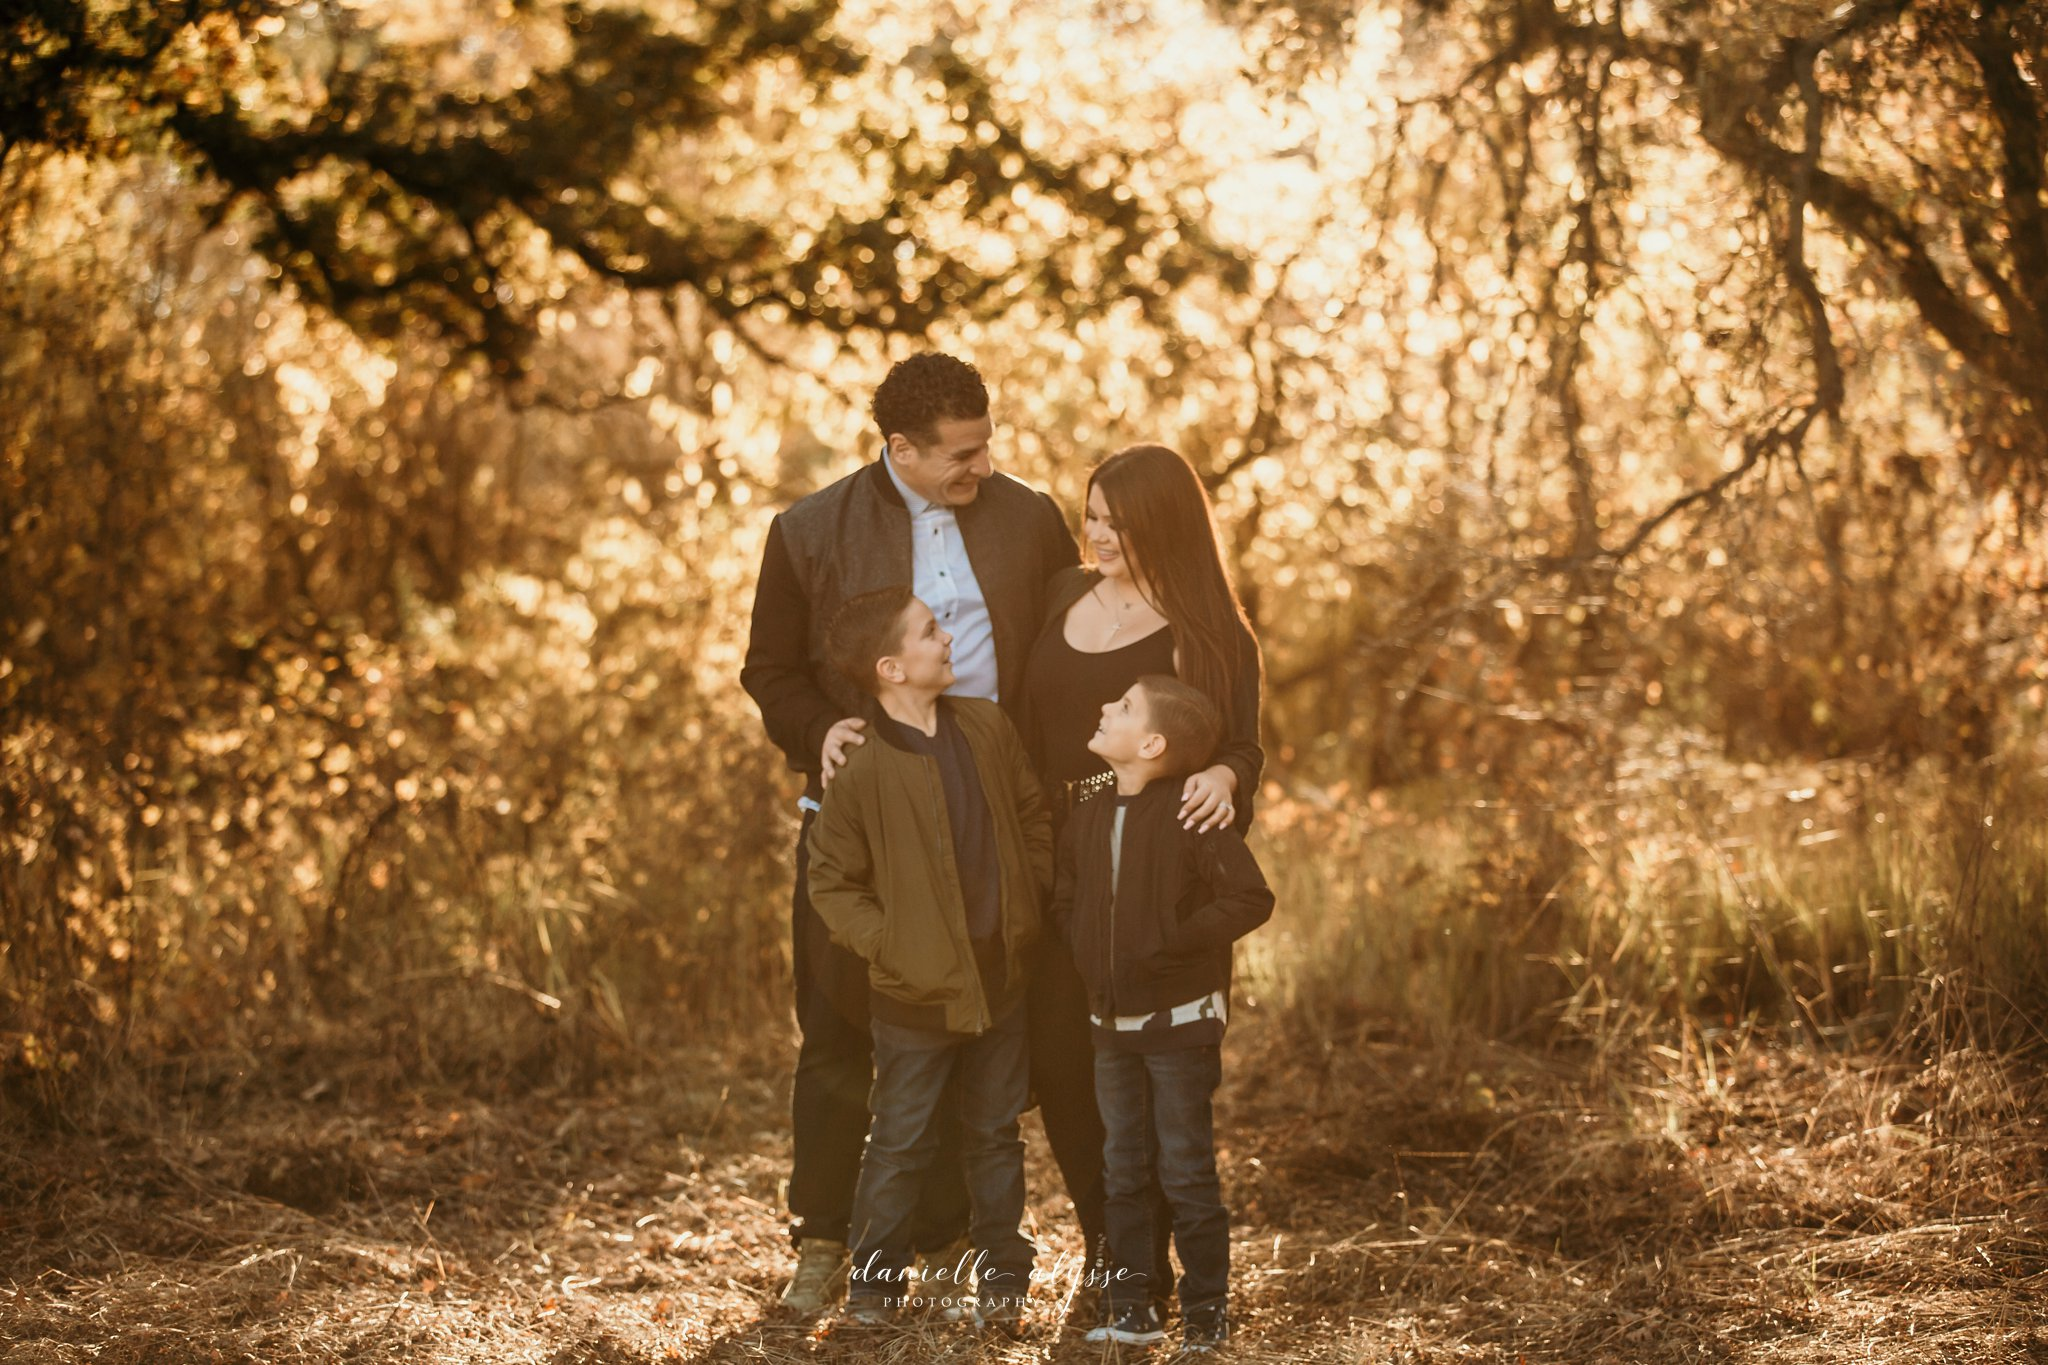 181125_fall_family_portrait_cosumnes_river_preserve_brittney_danielle_alysse_photography_3_WEB.jpg